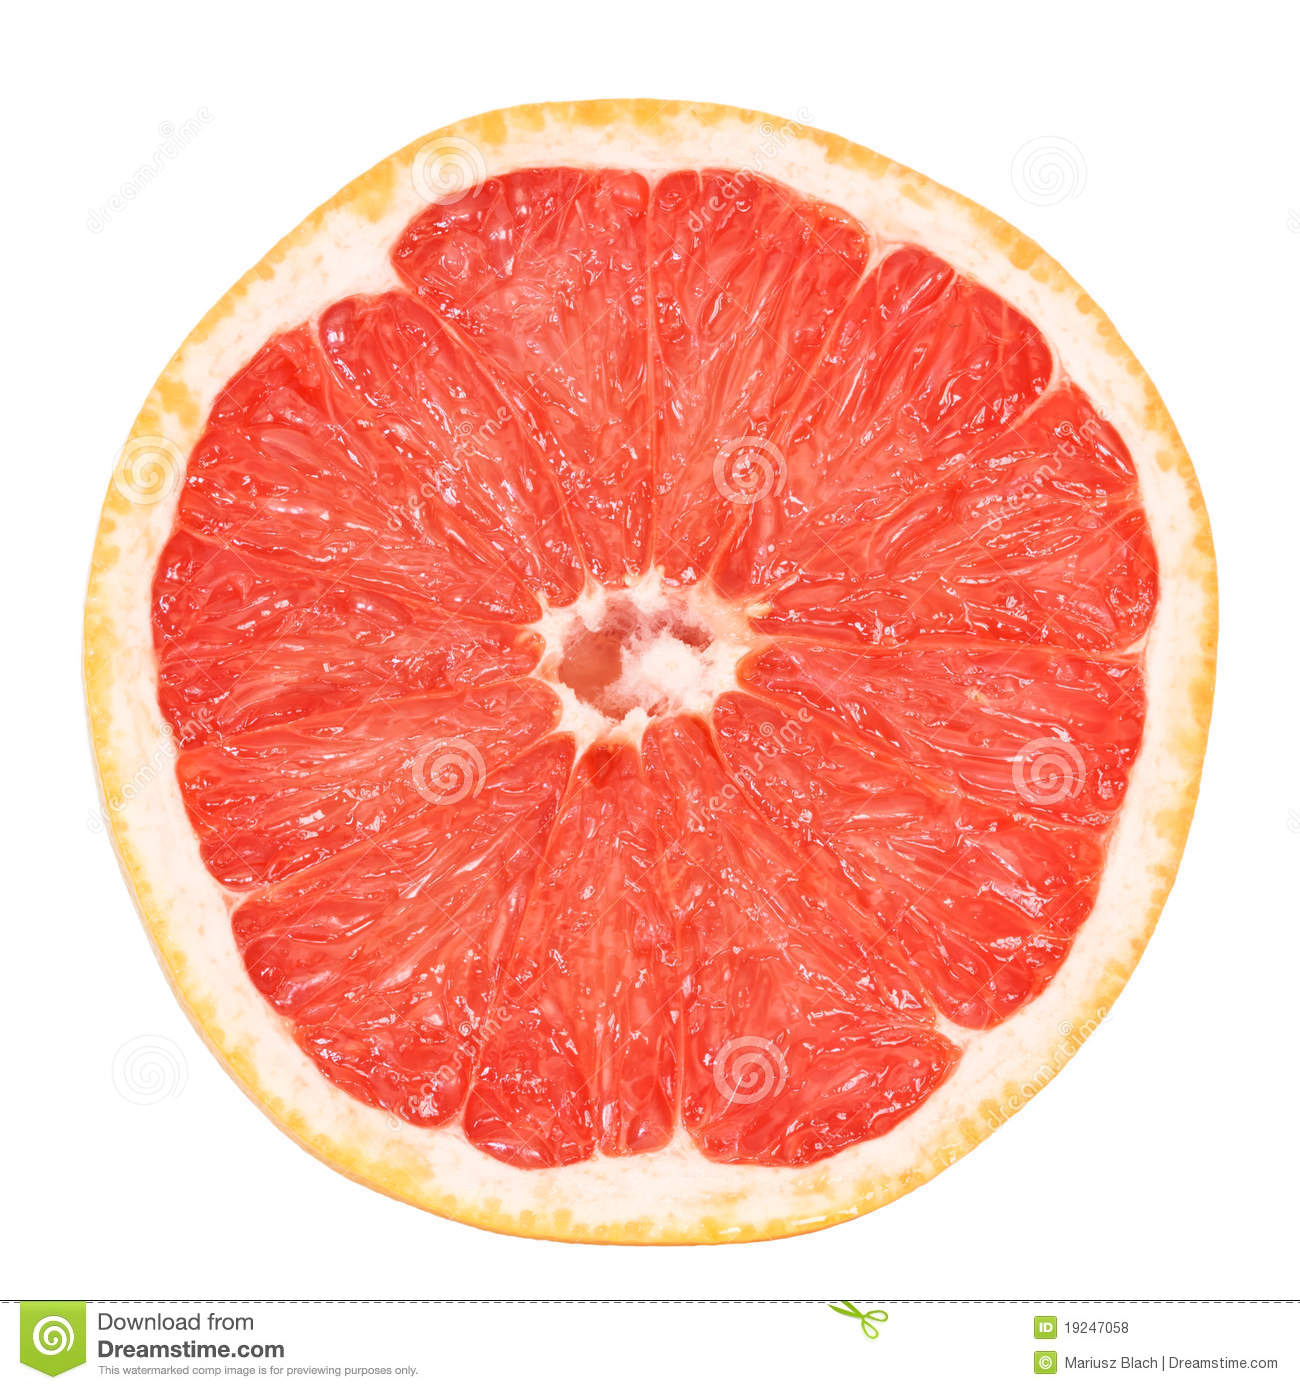 Half Grapefruit Royalty Free Stock Photos - Image: 19247058: dreamstime.com/royalty-free-stock-photos-half-grapefruit-image19247058